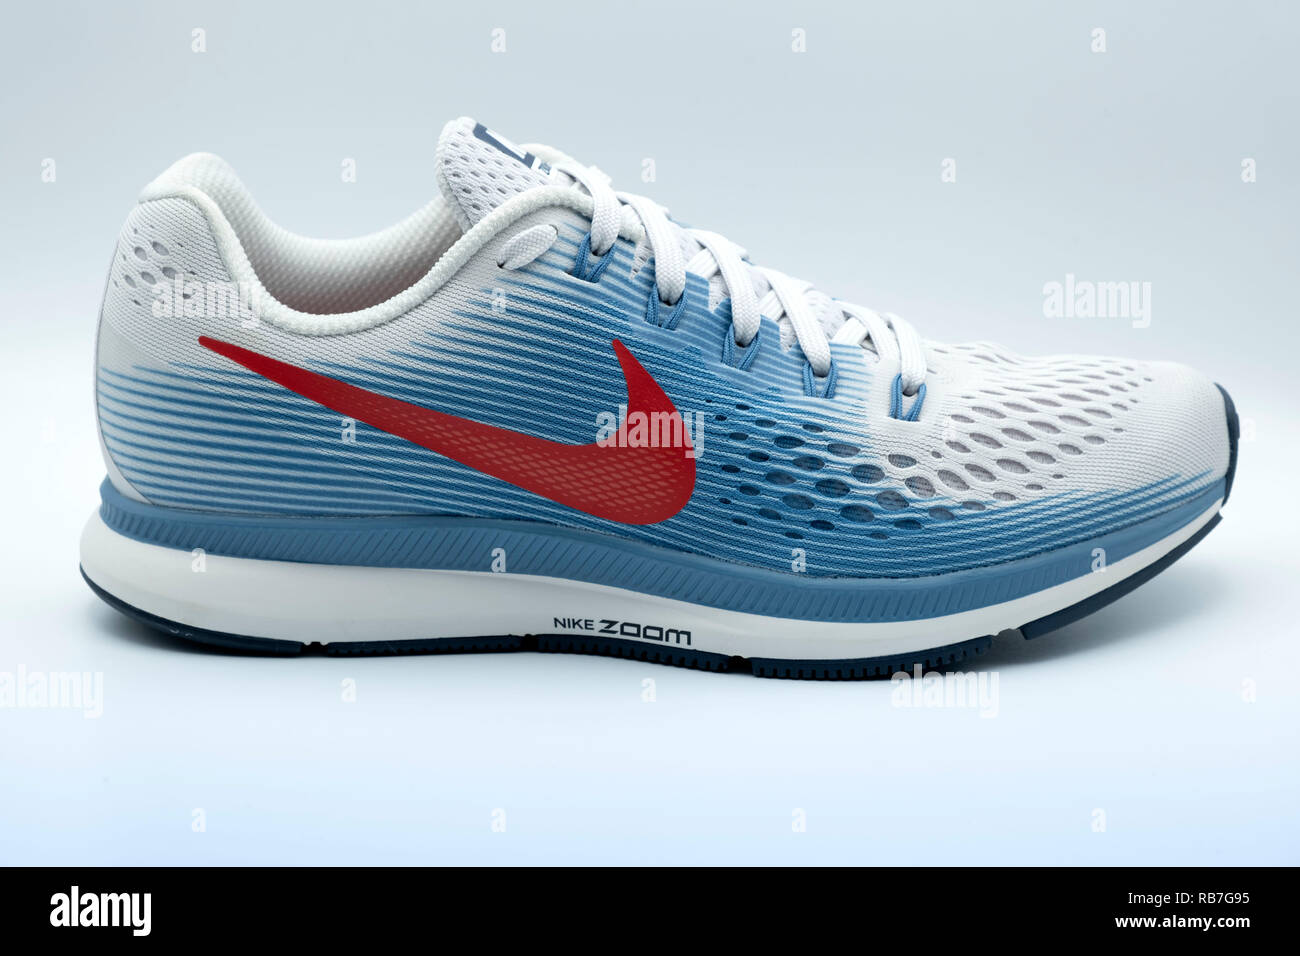 10862ba8 Lateral view of a blue and white Nike Pegasus 34 trainer with a red swoosh  logo